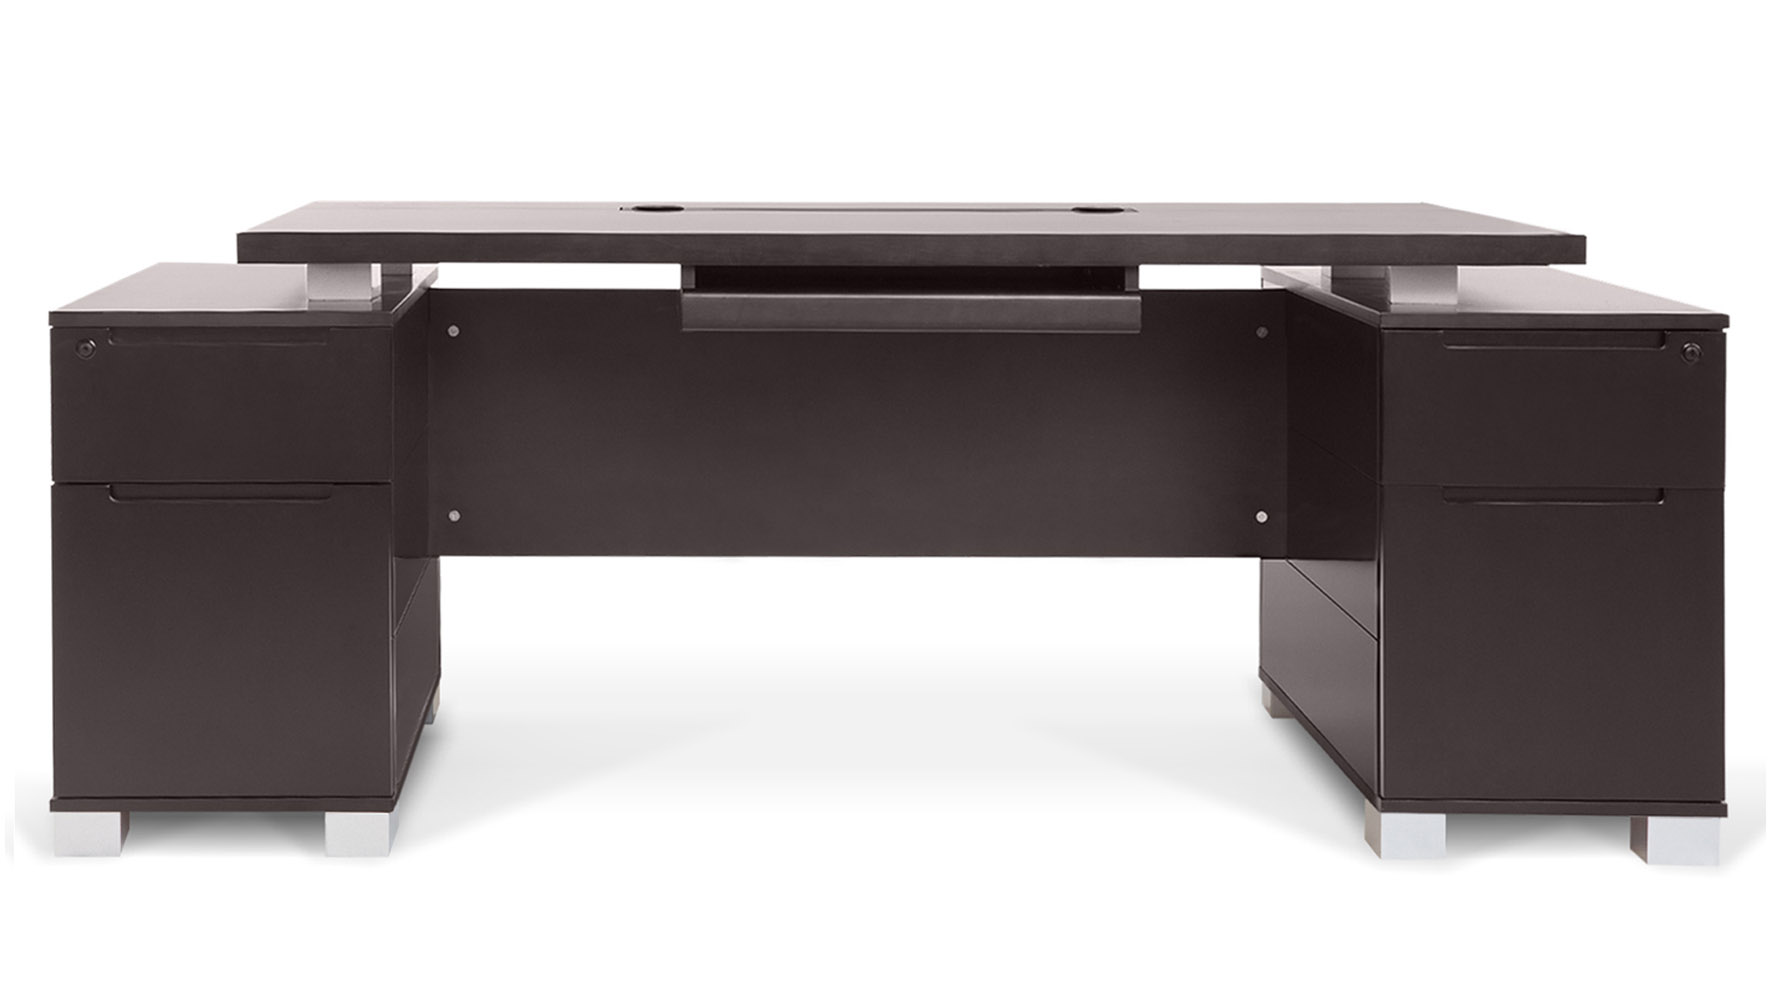 Modern Desk ford executive modern desk with filing cabinets - dark wood finish